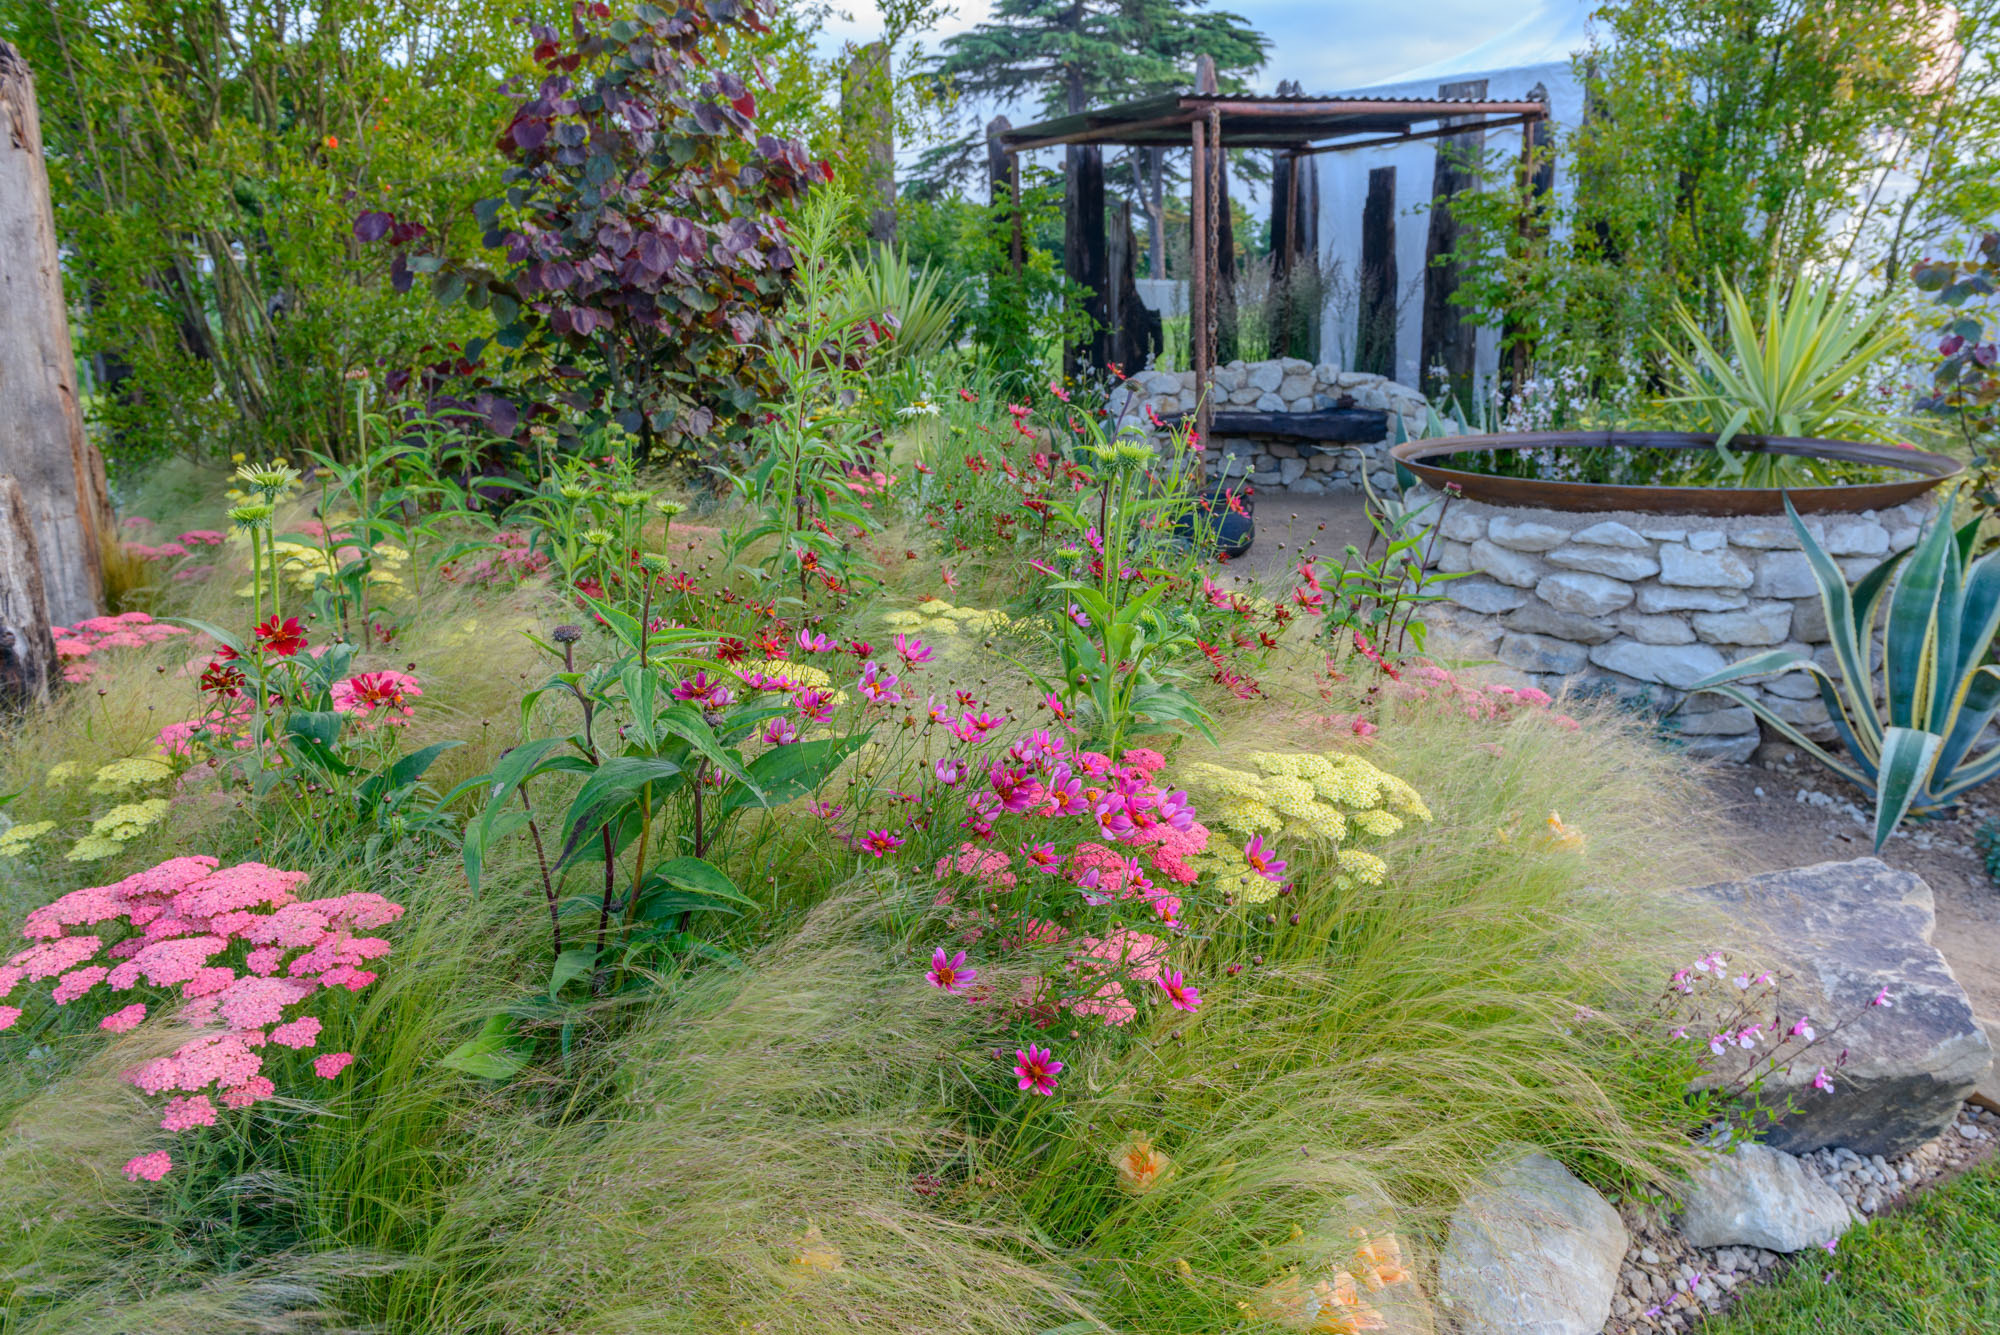 Jonathan ward garden photographer 39 s association - Hampton court flower show ...